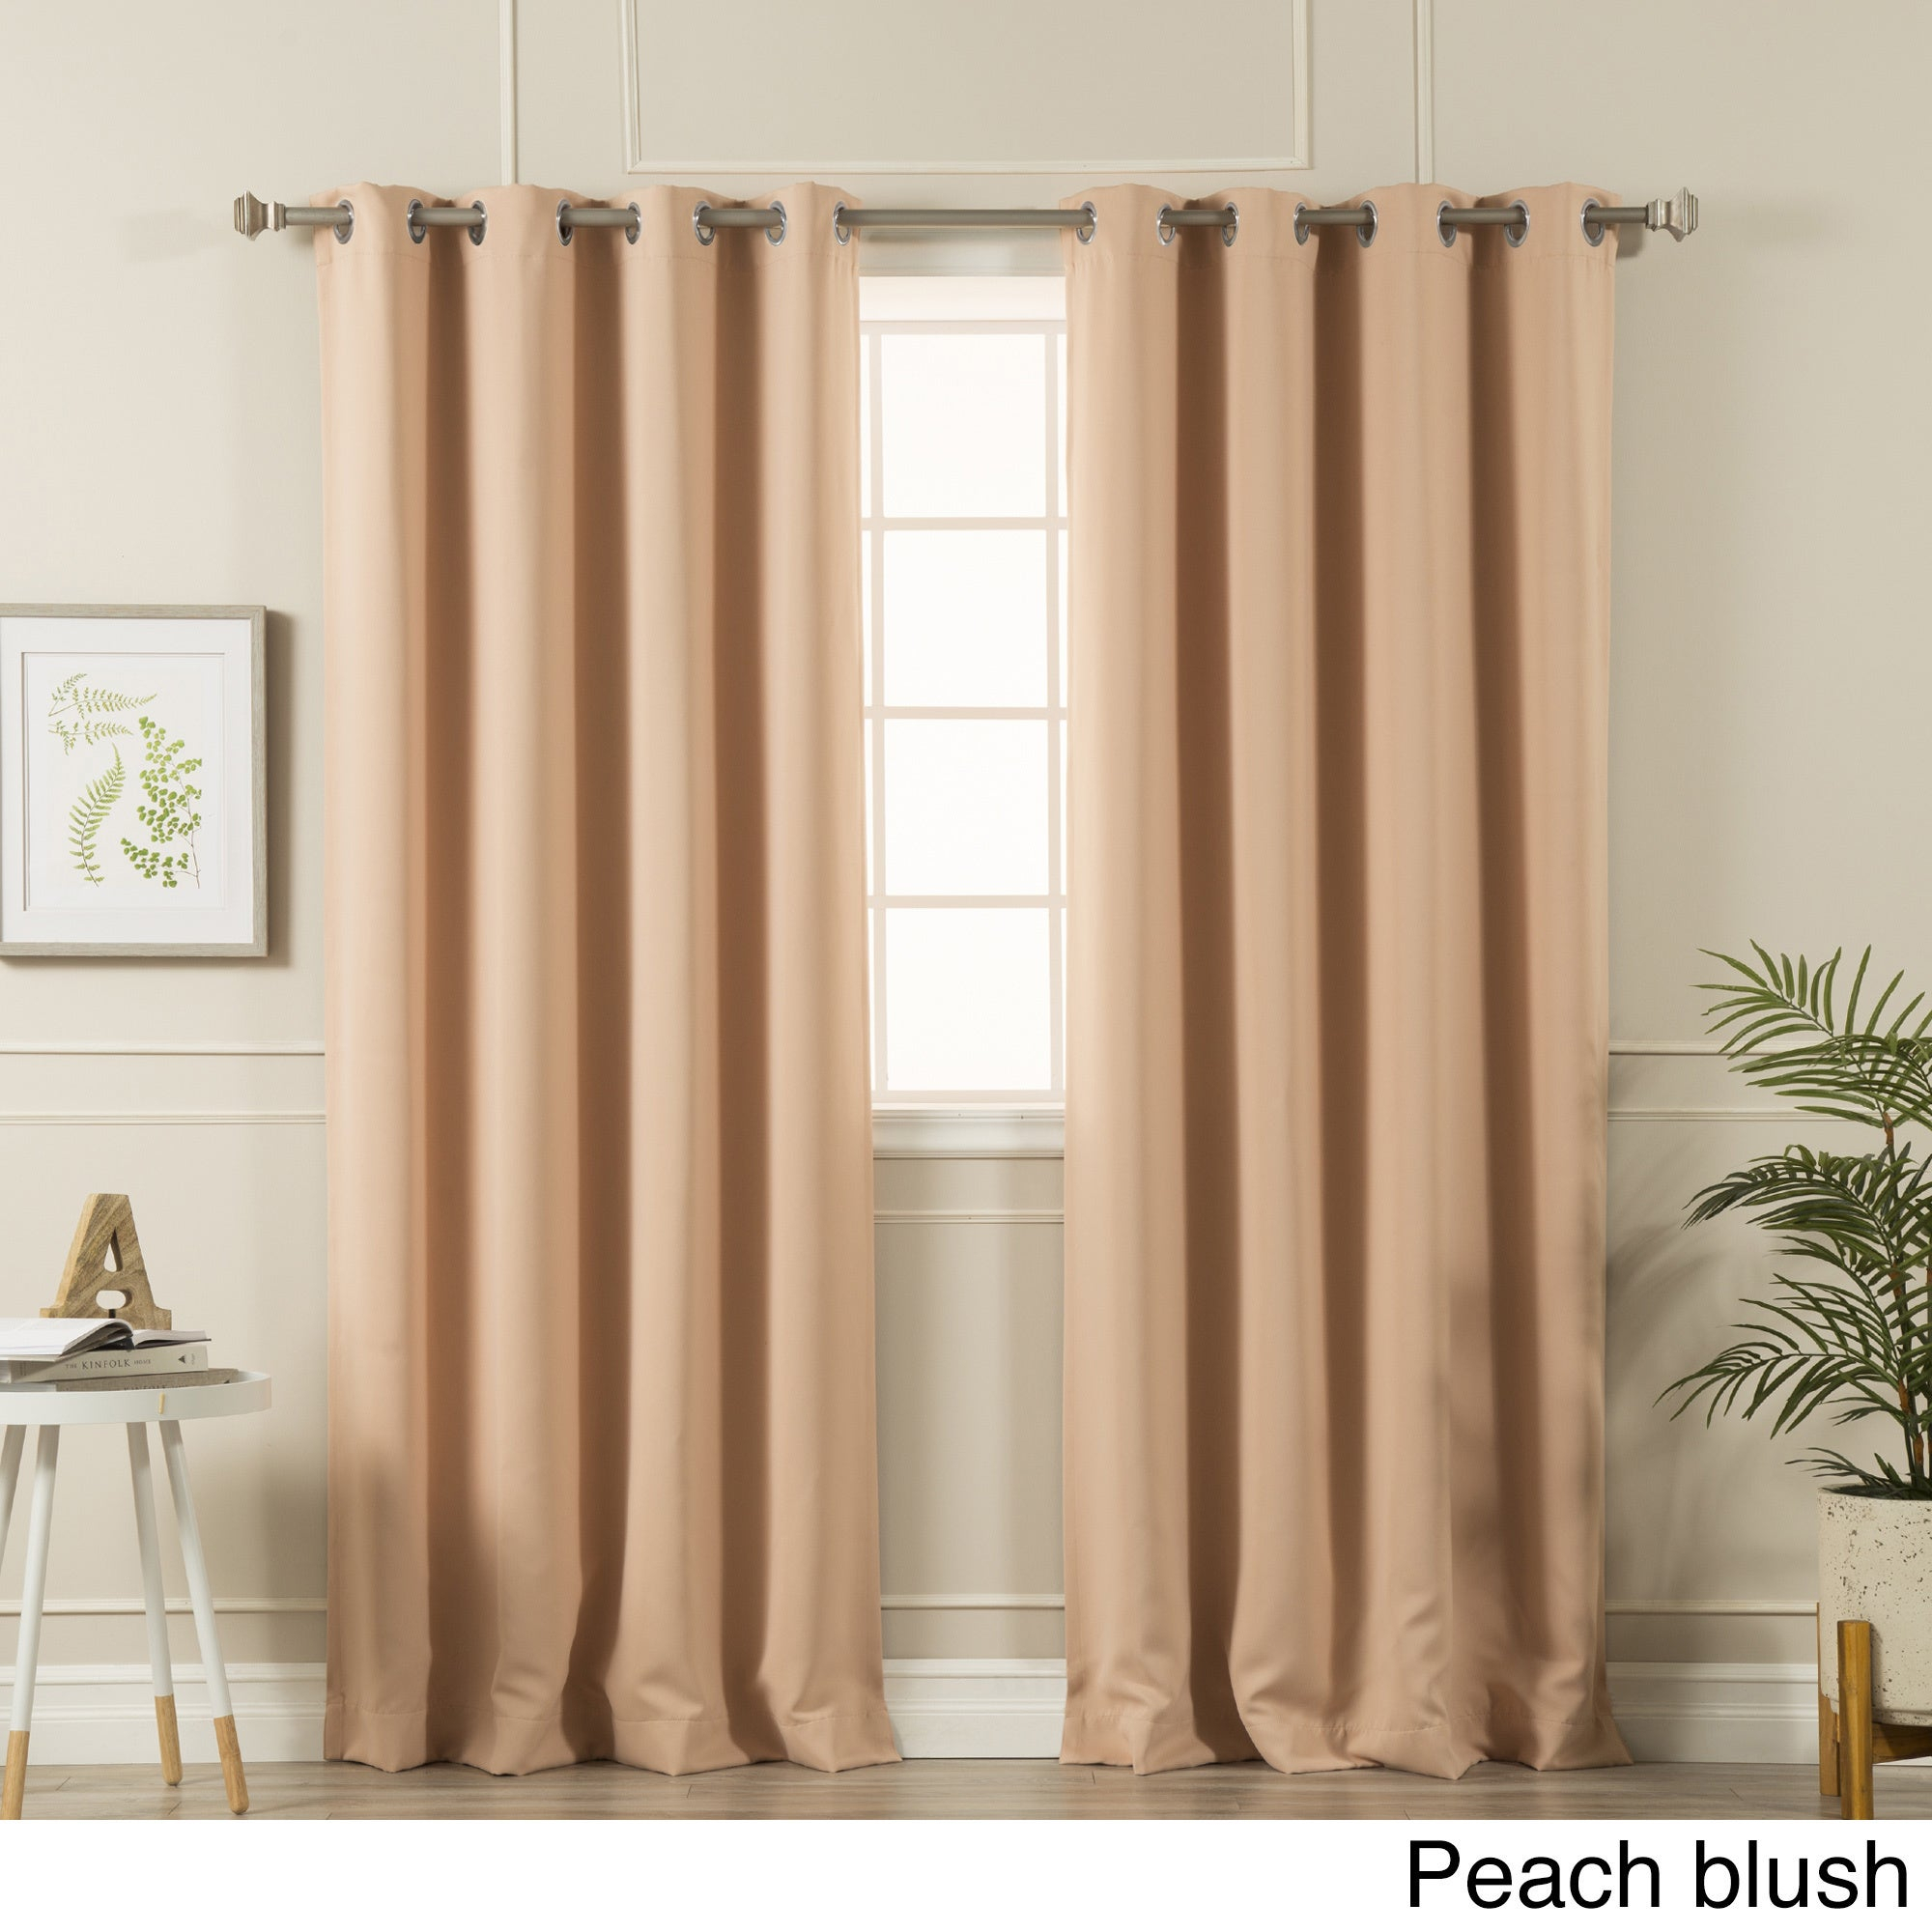 Aurora Home Silvertone Grommet Top Thermal Insulated Blackout Curtain Panel Pair Within Grommet Top Thermal Insulated Blackout Curtain Panel Pairs (View 4 of 20)